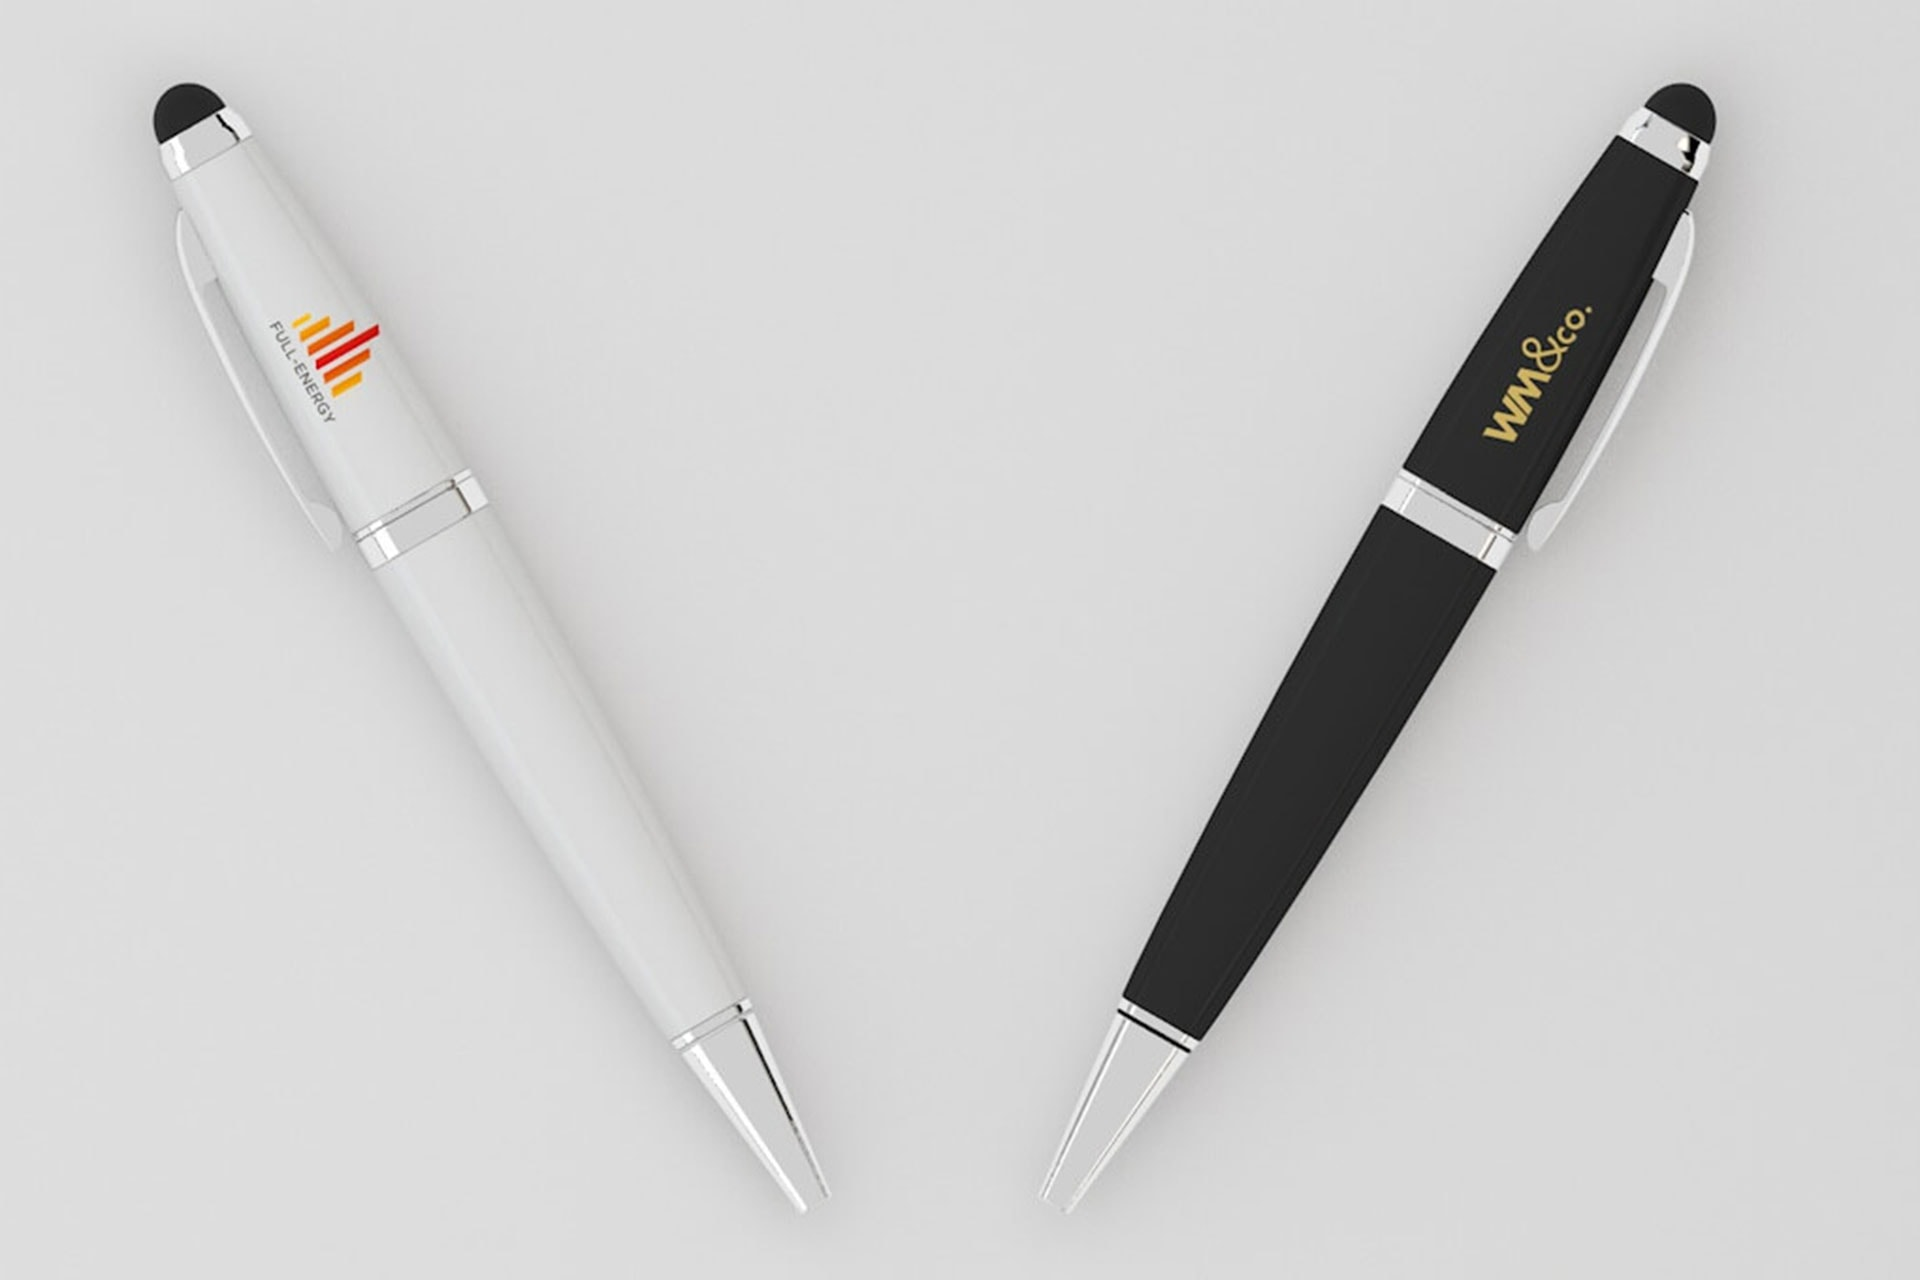 Penna USB con touch screen